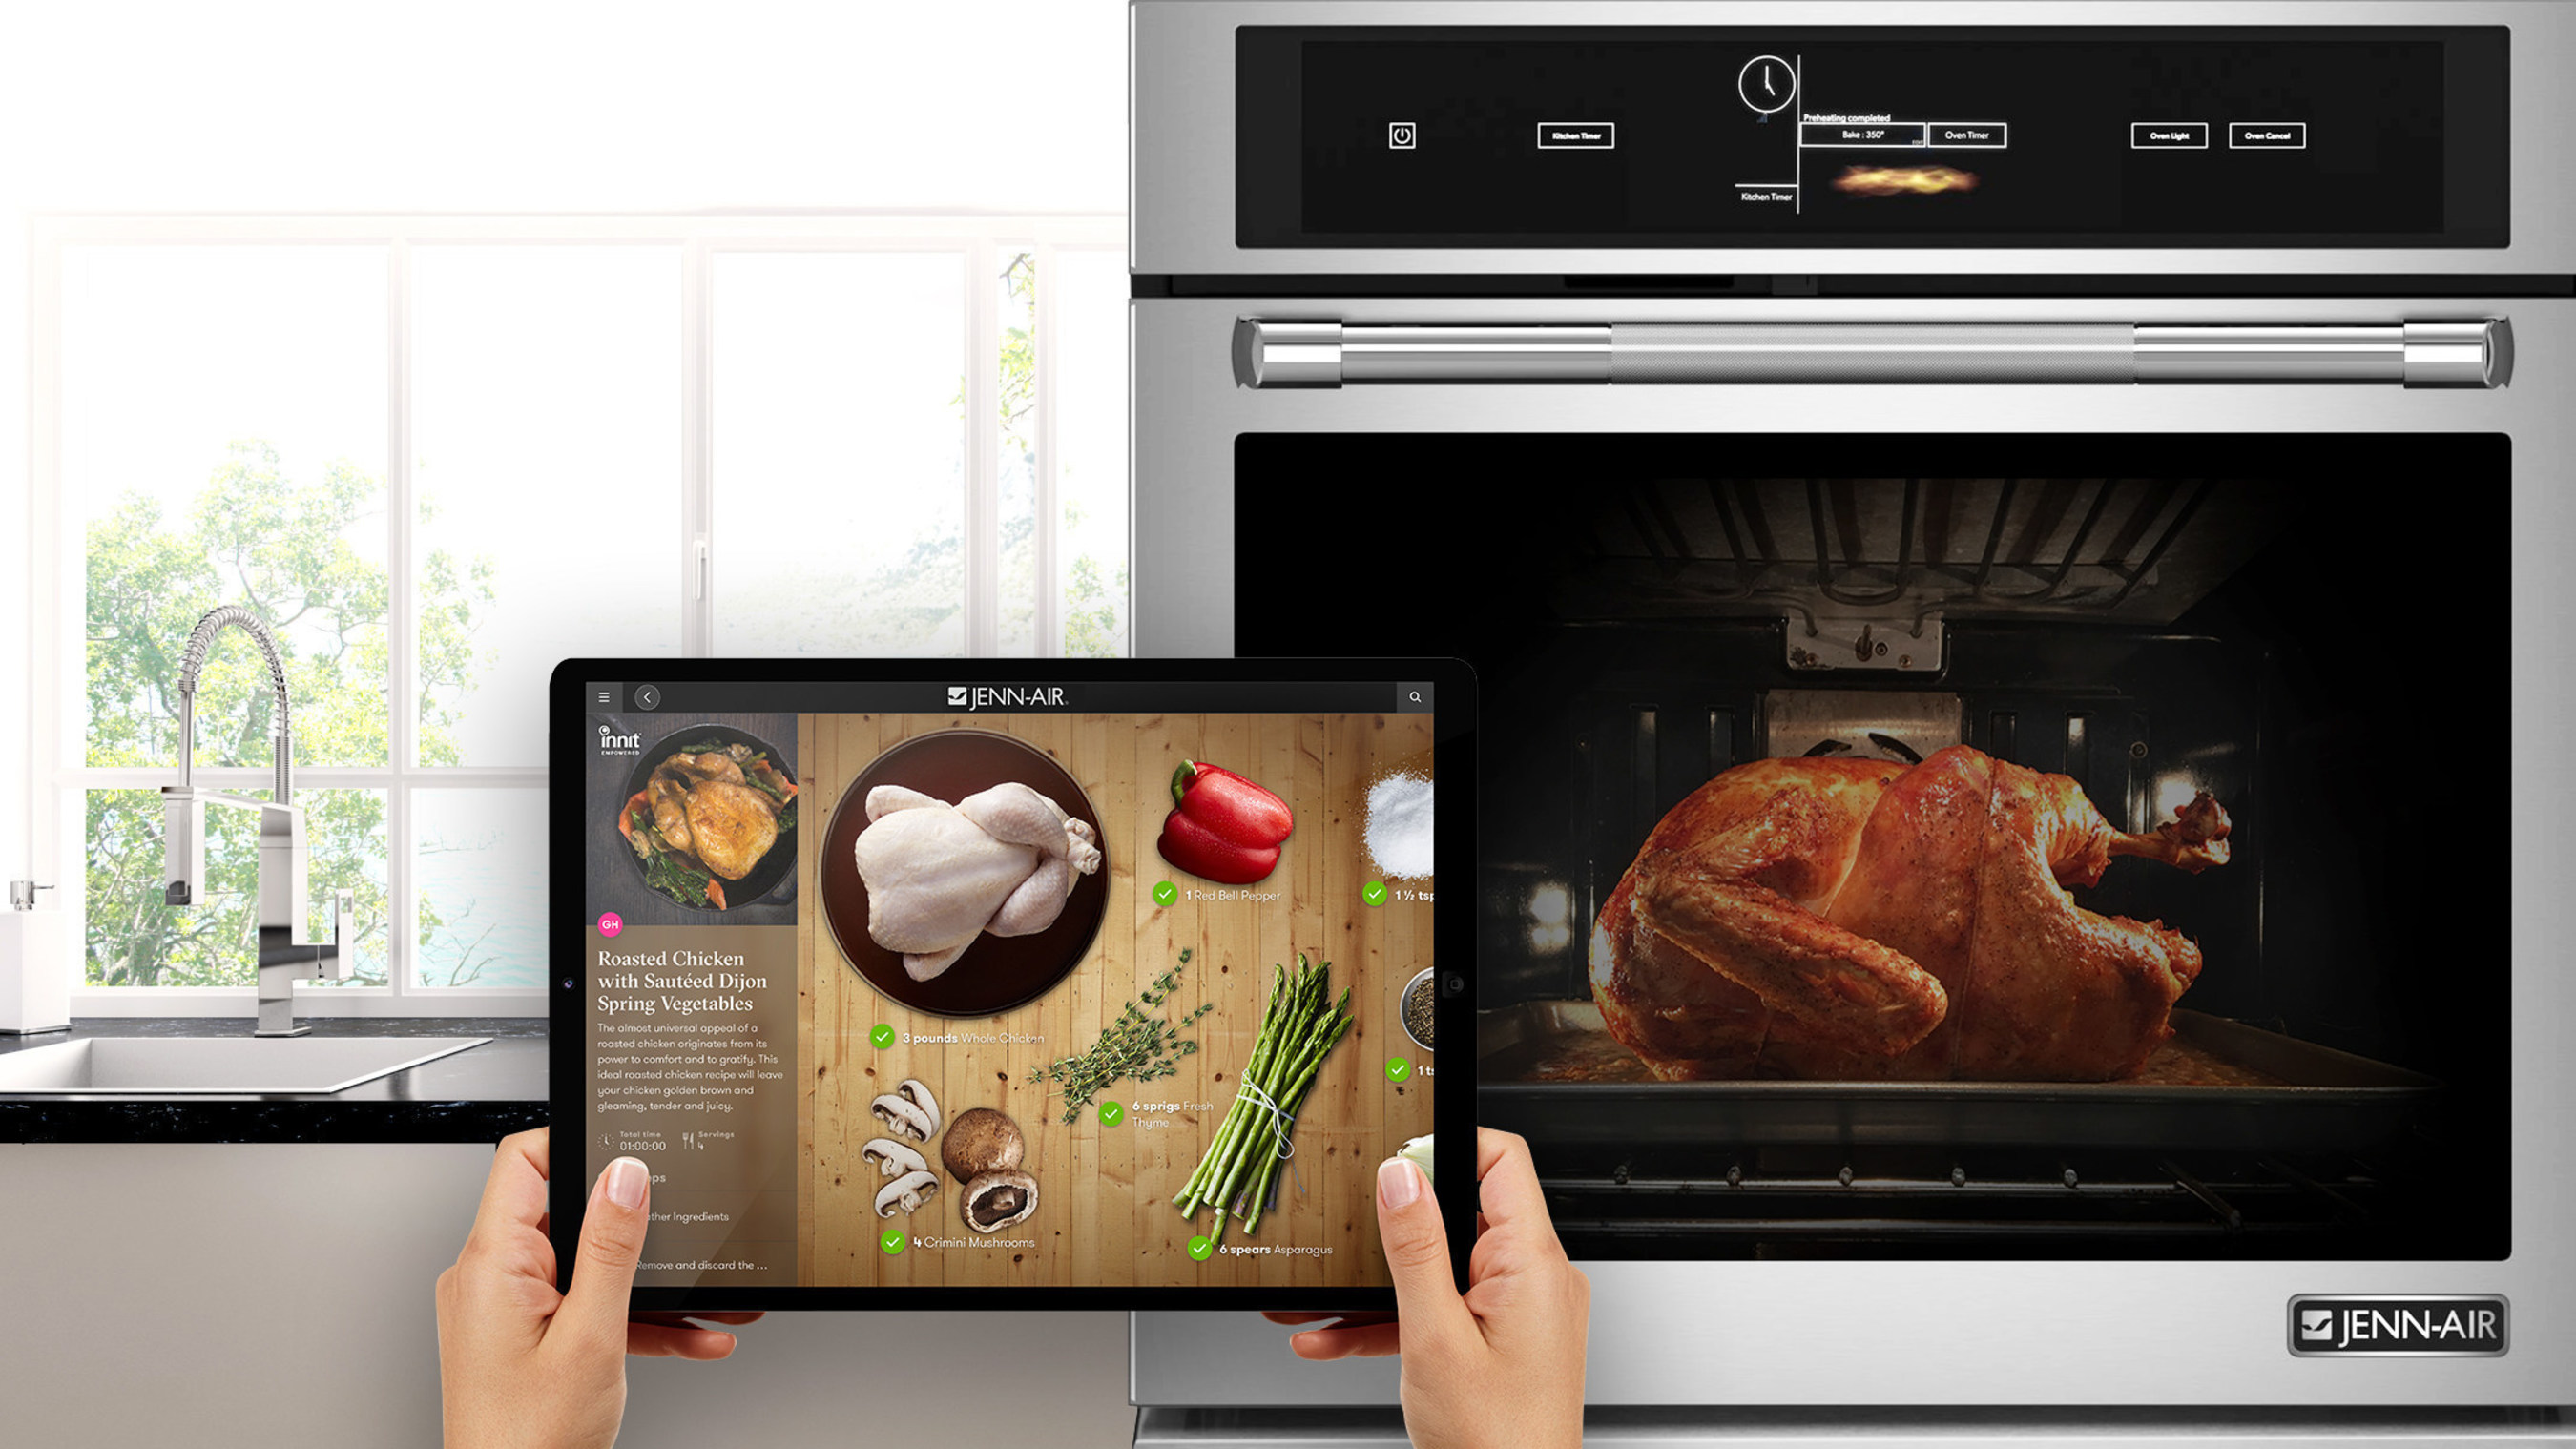 Whirlpool Corporation connected cooking appliances, starting with Jenn-Air(R) brand WiFi connected ovens, will ...